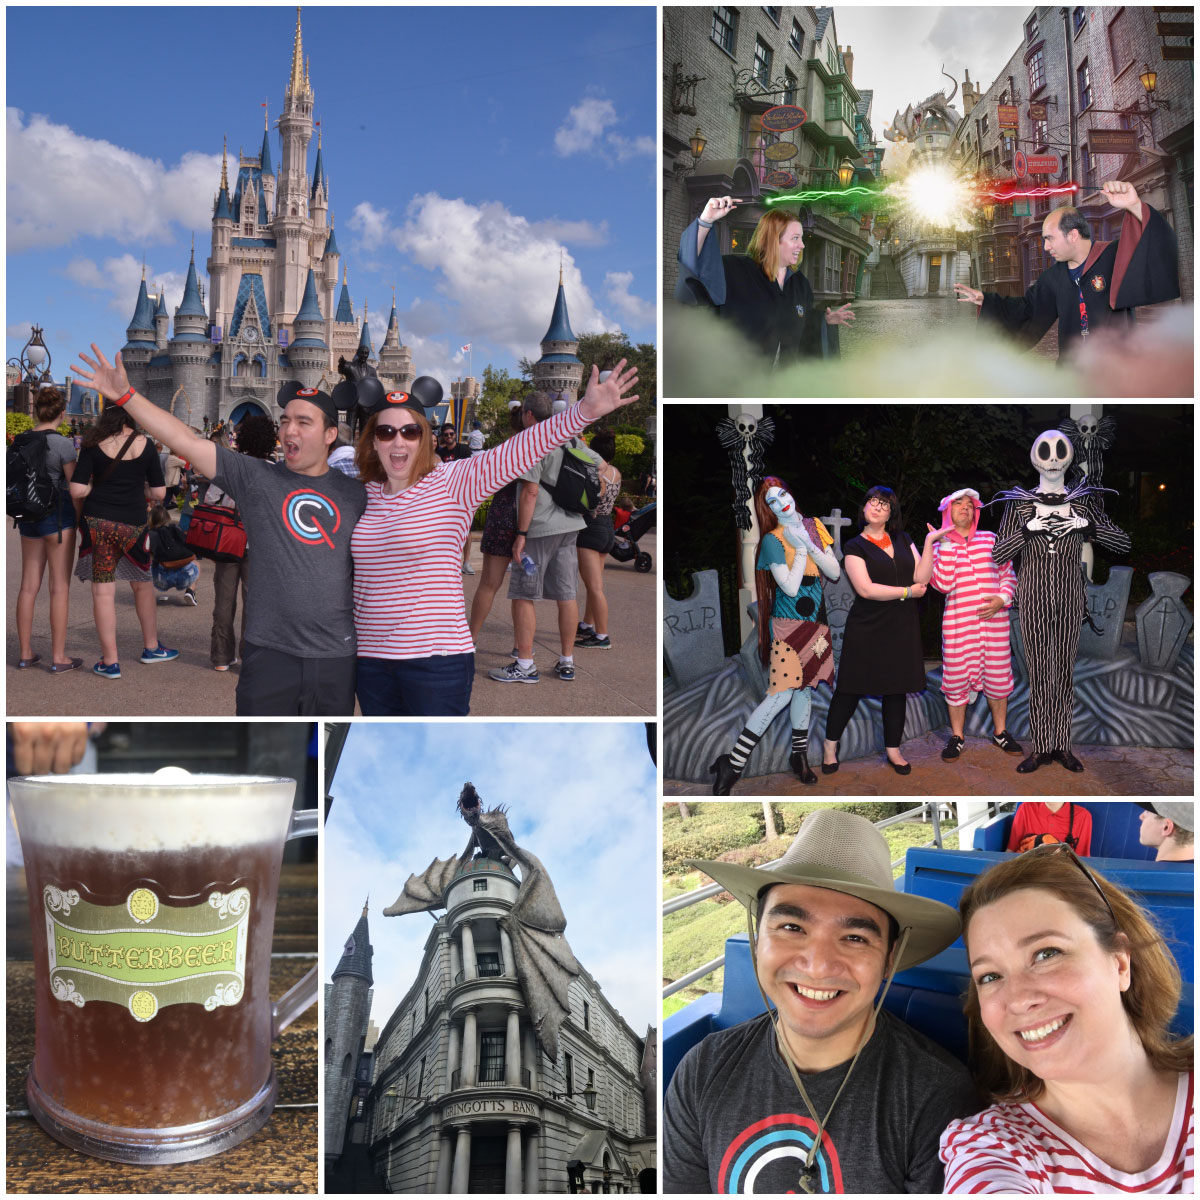 Photos from Disney World and the Wizarding World of Harry Potter